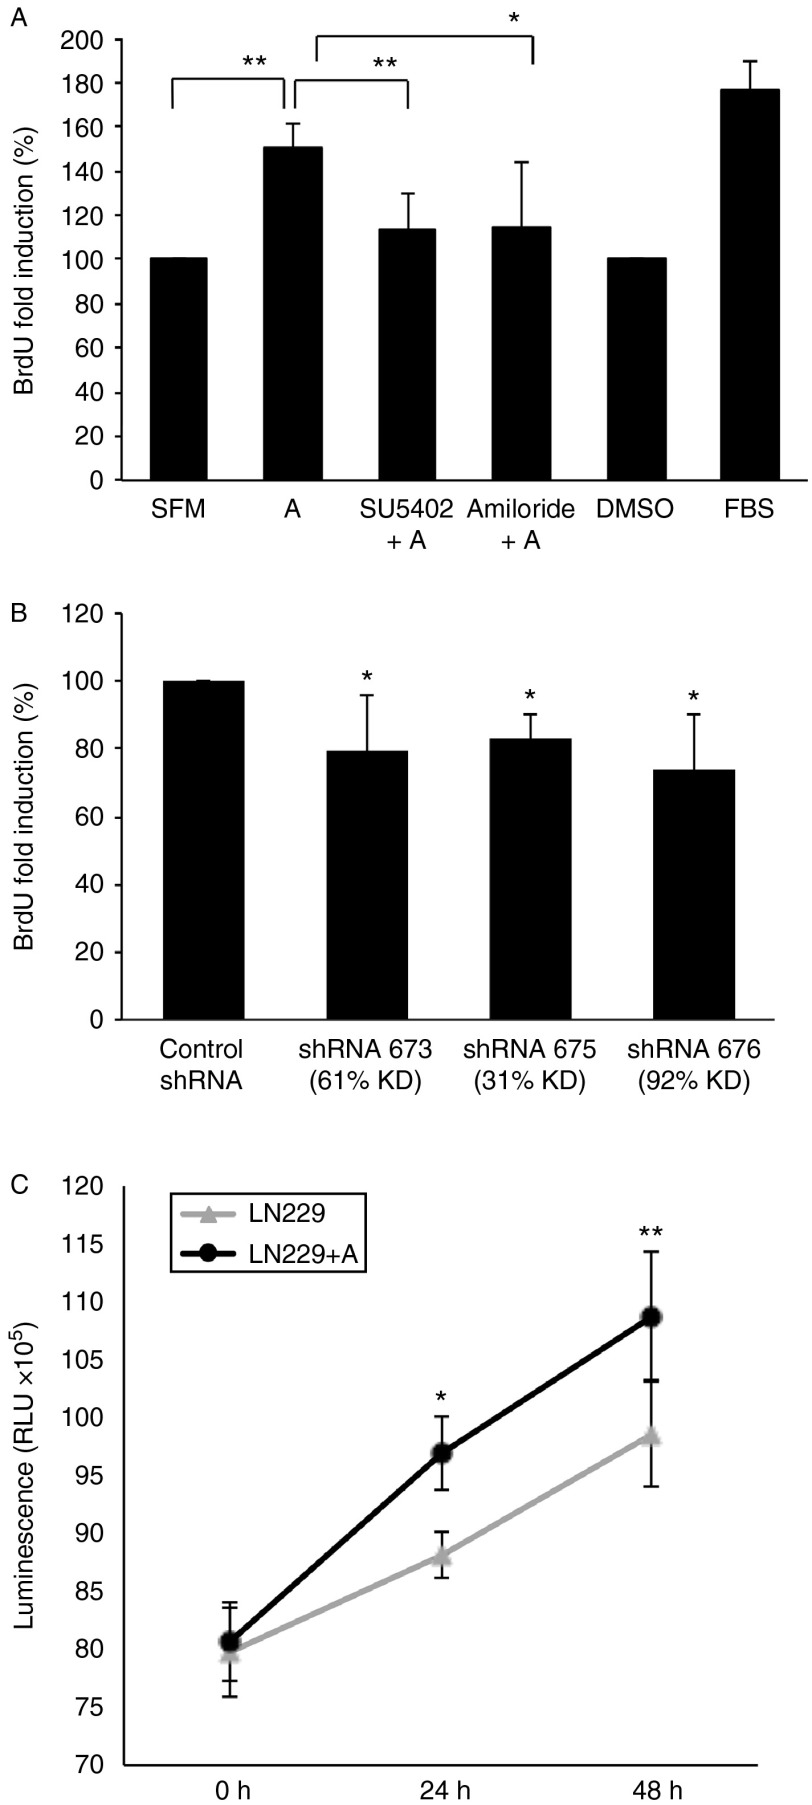 Effects of anosmin-1 in tumor cell proliferation. (A) LN229 cells were treated with anosmin-1 for 6 h with BrdU labeling during the last 2 h in serum-free conditions. In parallel experiments, cells were pre-treated with SU5402 or amiloride for 30 min before stimulation with anosmin-1. Anosmin-1-treated cells (denoted as A) show increased BrdU incorporation (** P =0.0035) compared with the untreated or solvent (DMSO)-treated cells. Pretreatment with SU5402 or amiloride, however, attenuated anosmin-1-induced proliferation (** P =0.0046 and * P =0.0423 respectively). At least five random fields were analysed, which were repeated four times. (B) shRNA-mediated knockdown of KAL1 results in reduced BrdU incorporation in A172. The P values obtained from four independent experiments are 0.0319 (for shRNA673), 0.019 (for shRNA675), and 0.05 (for shRNA676) when compared with the control shRNA. (C) LN229 cells treated with anosmin-1 indicate significantly higher proliferation in <t>CellTitre-Glo</t> luminescent assay, compared with the untreated control at 24 h (* P =0.0103) and 48 h (** P =0.0048) by a two-way ANOVA test. Error bars indicate s.e.m . from five independent experiments.